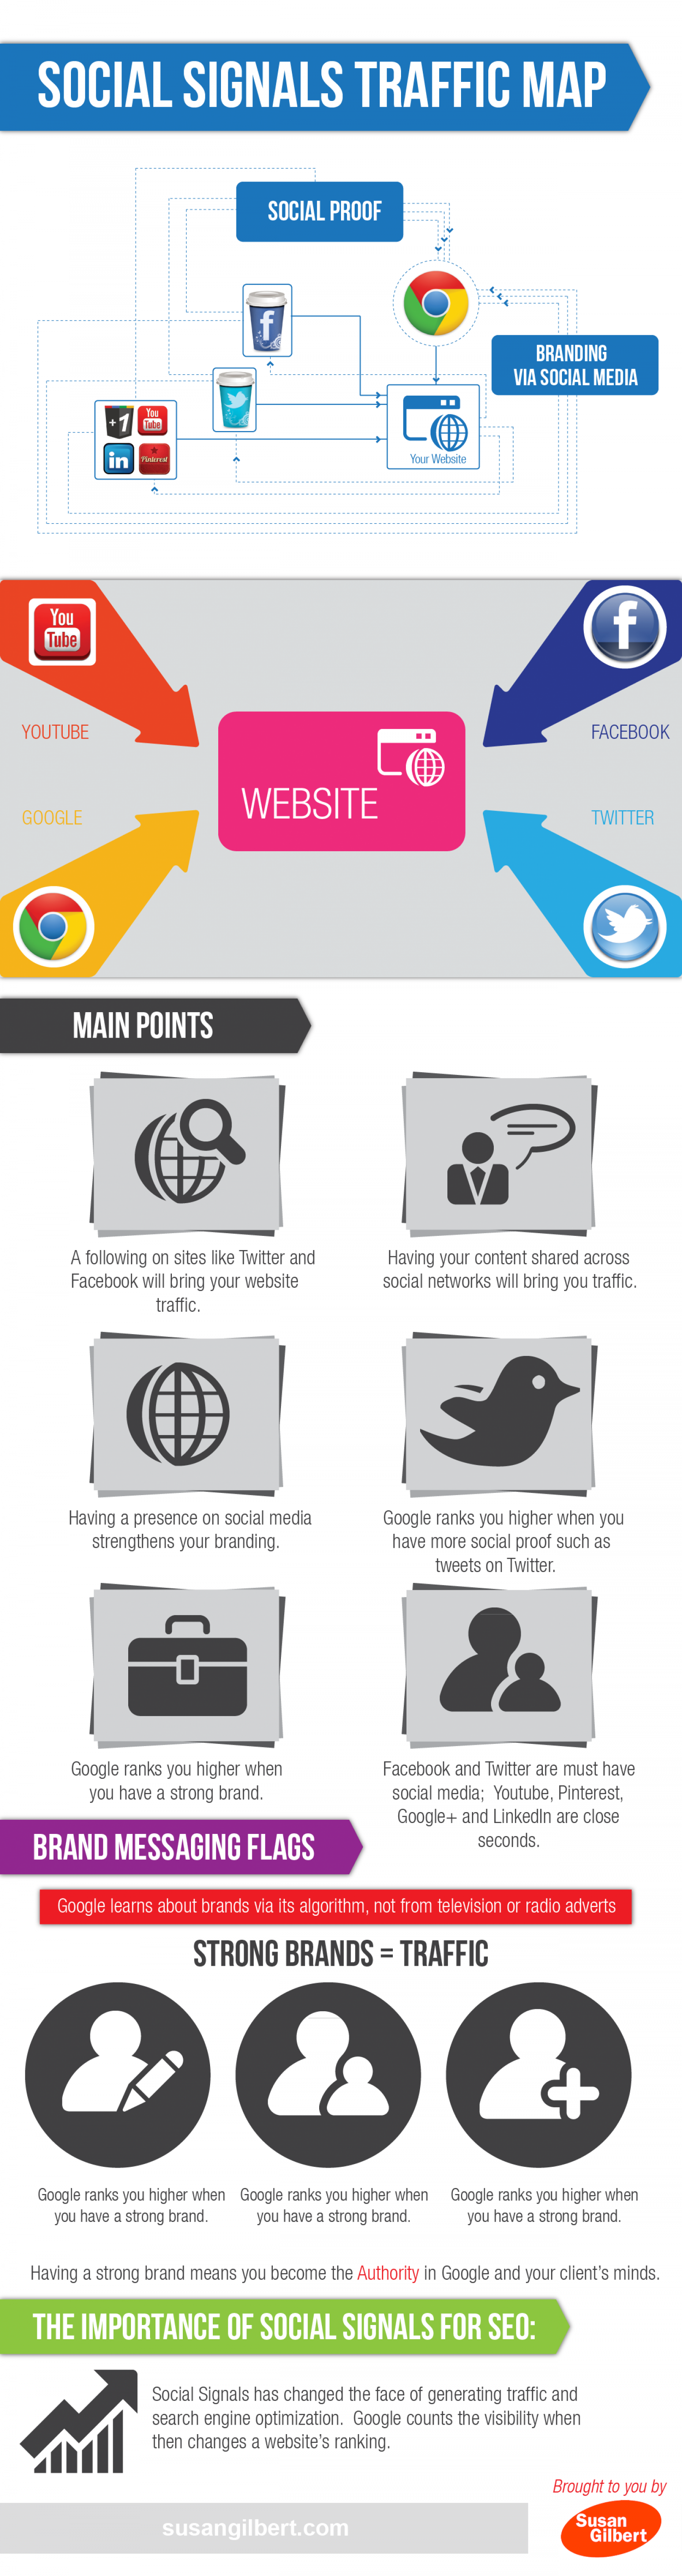 Why Social Sharing Matters Infographic